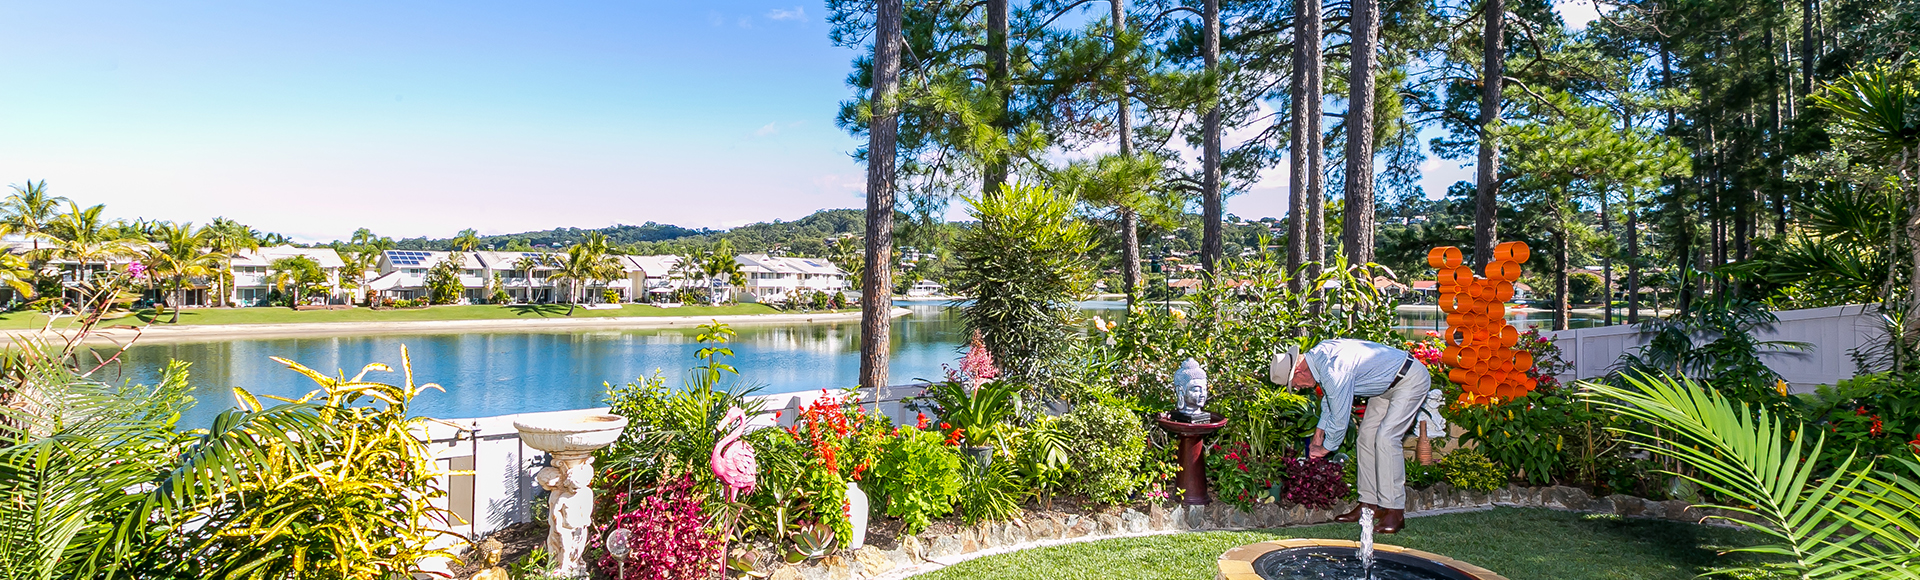 Pine Lake Retirement Village, Elanora QLD | Stockland